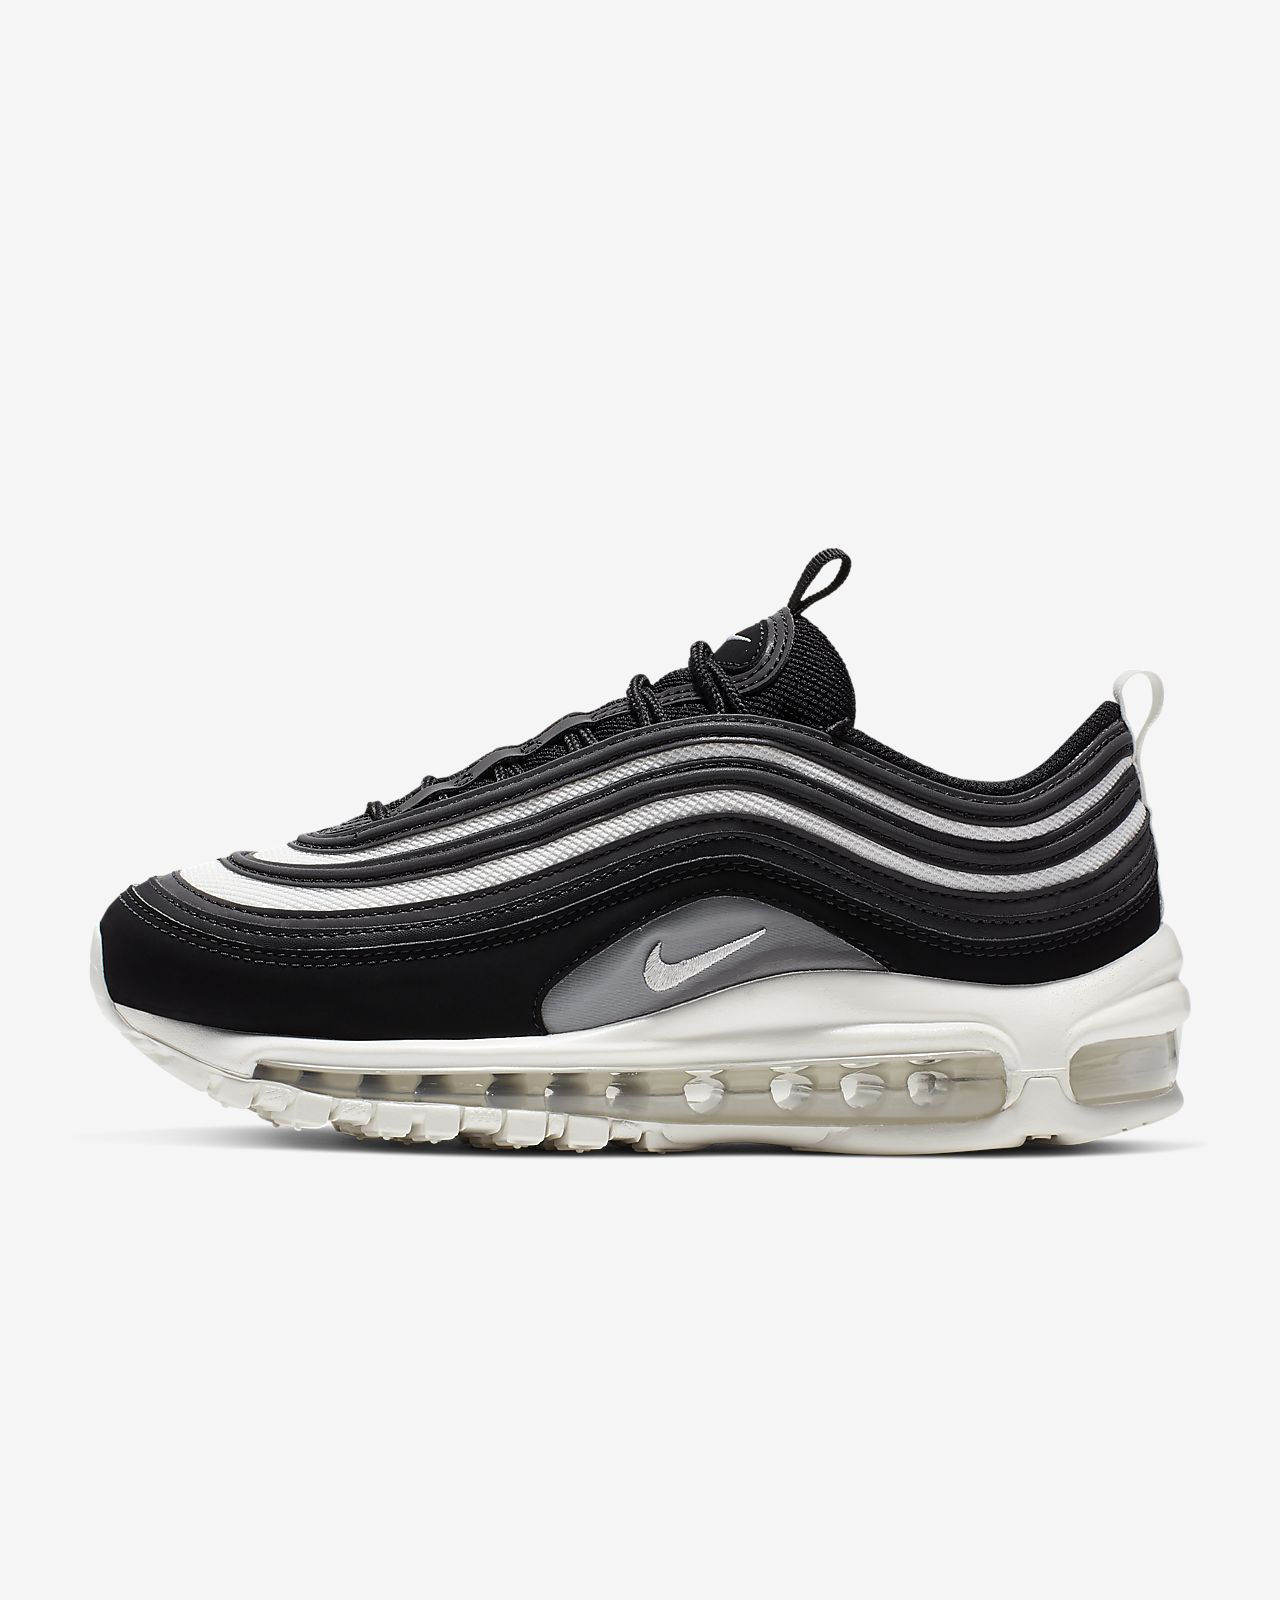 46b330e5e8ebc Nike Air Max 97 Women's Shoe. Nike.com GB